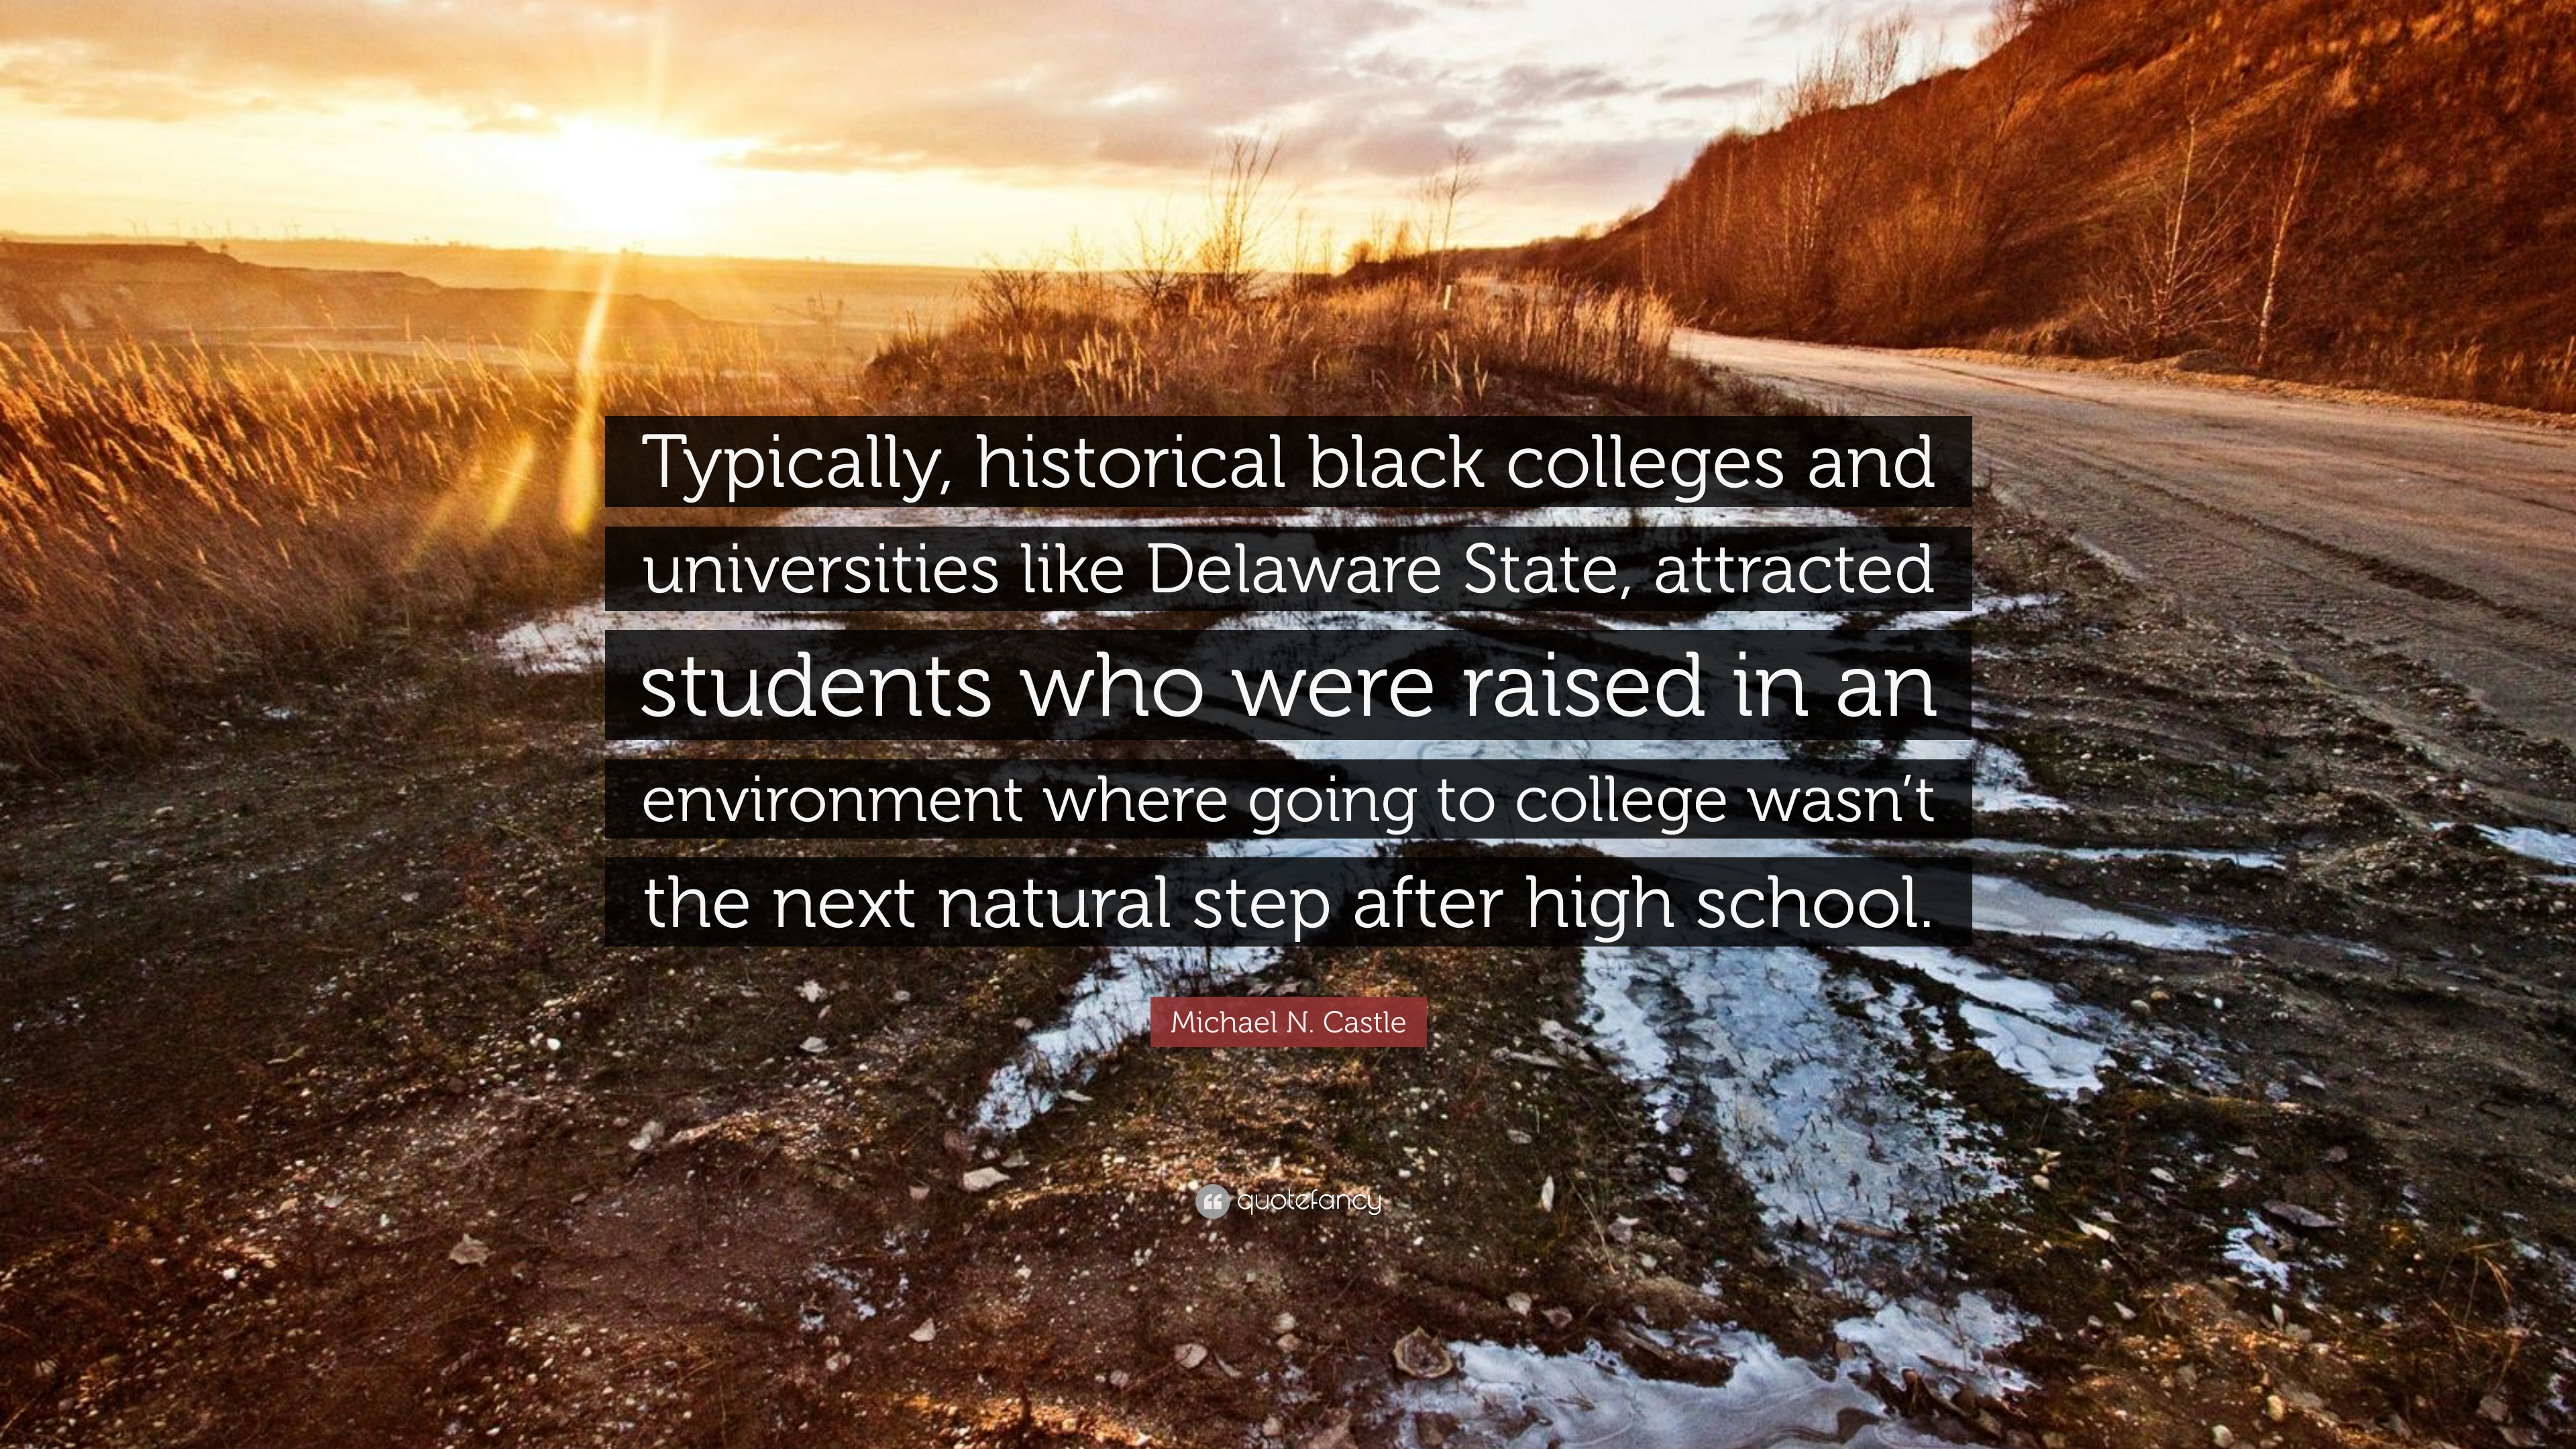 michael n castle quote typically historical black colleges and michael n castle quote typically historical black colleges and universities like delaware